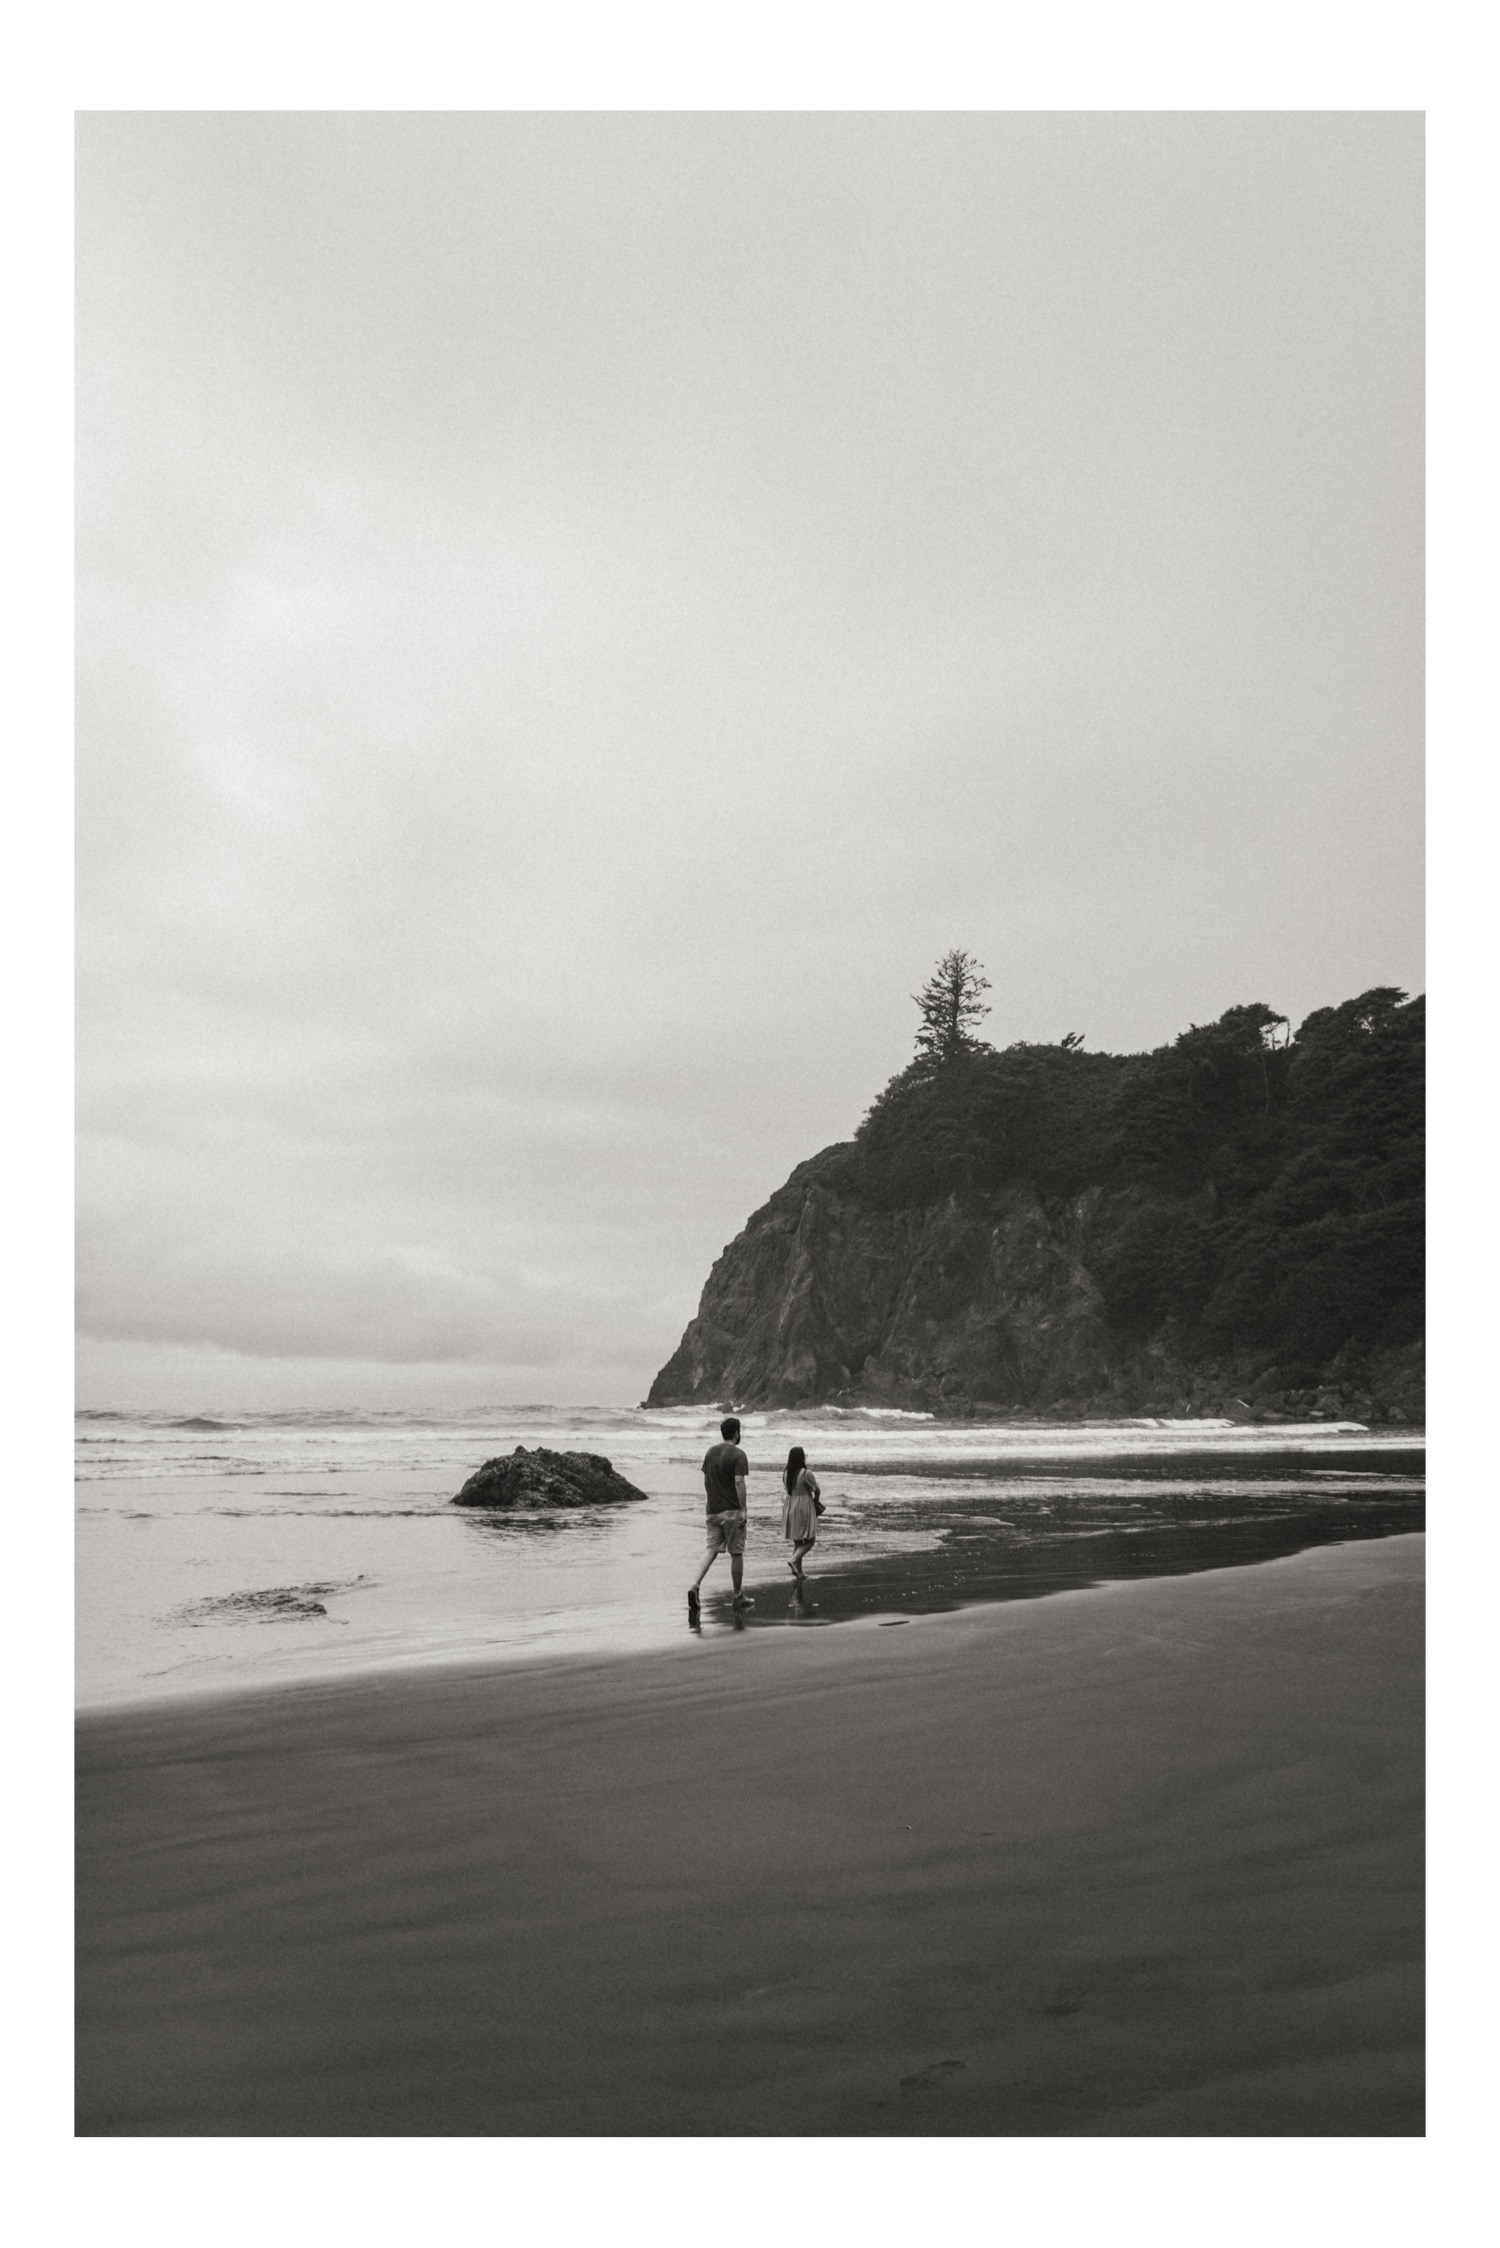 Farrah and Drew walk along a beach outside of Olympic National Park.